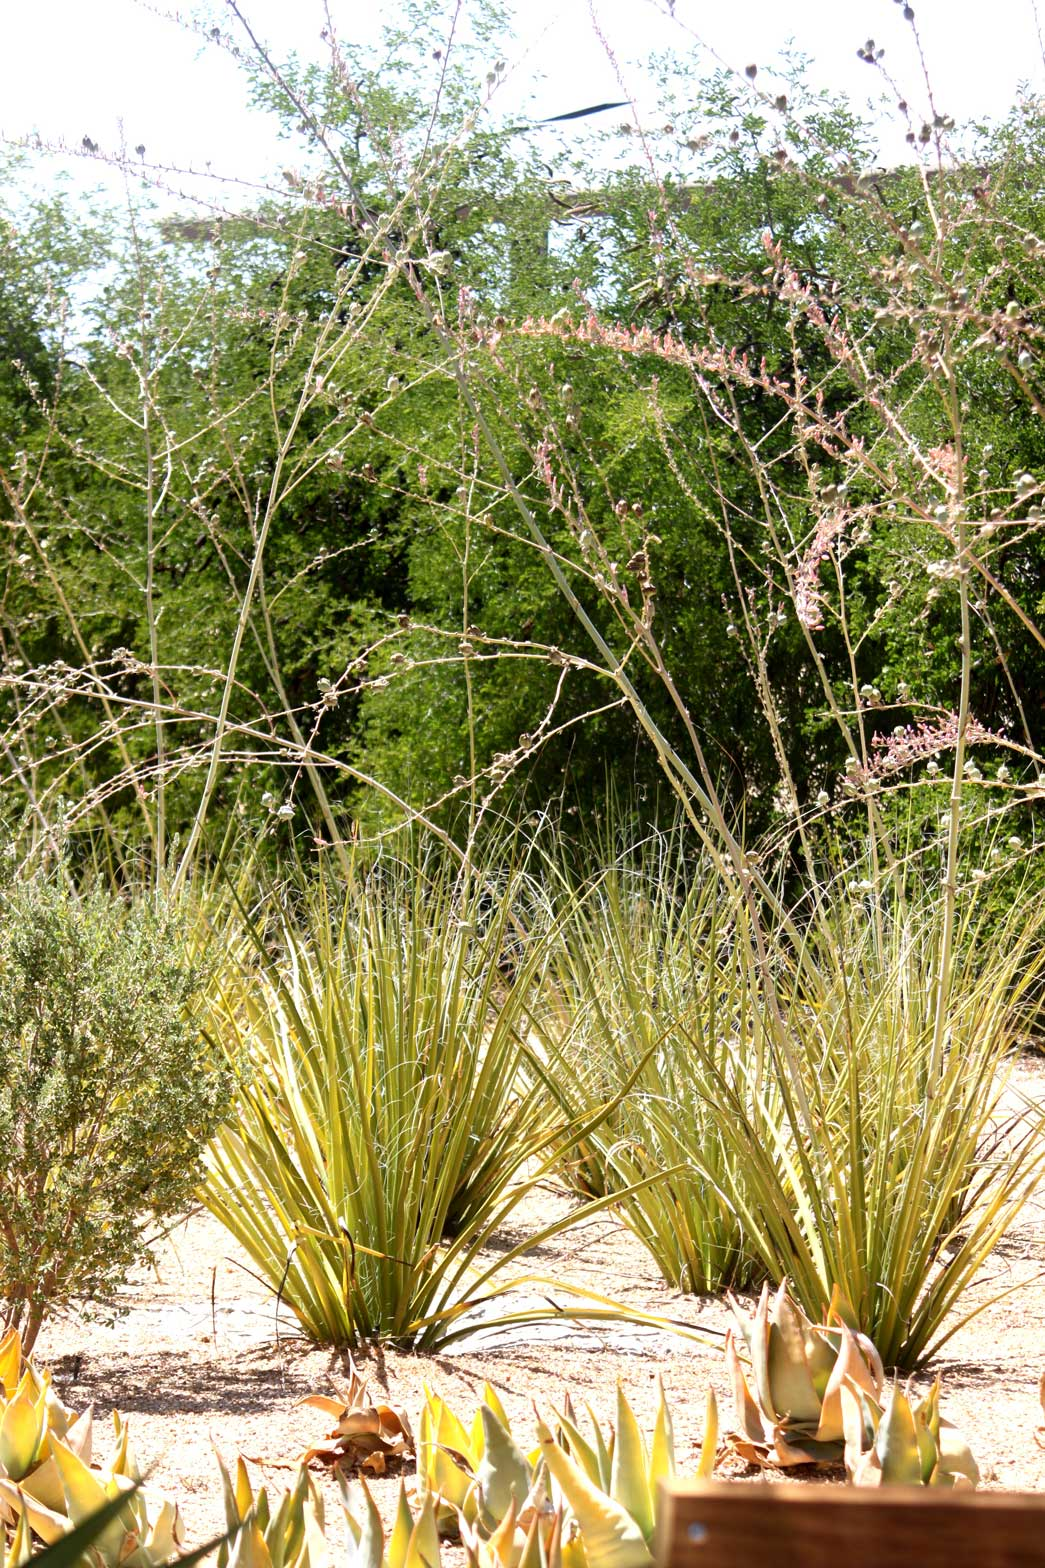 Giant Hesperaloe flowering with a hedgerow of Texas Ebony behind them.